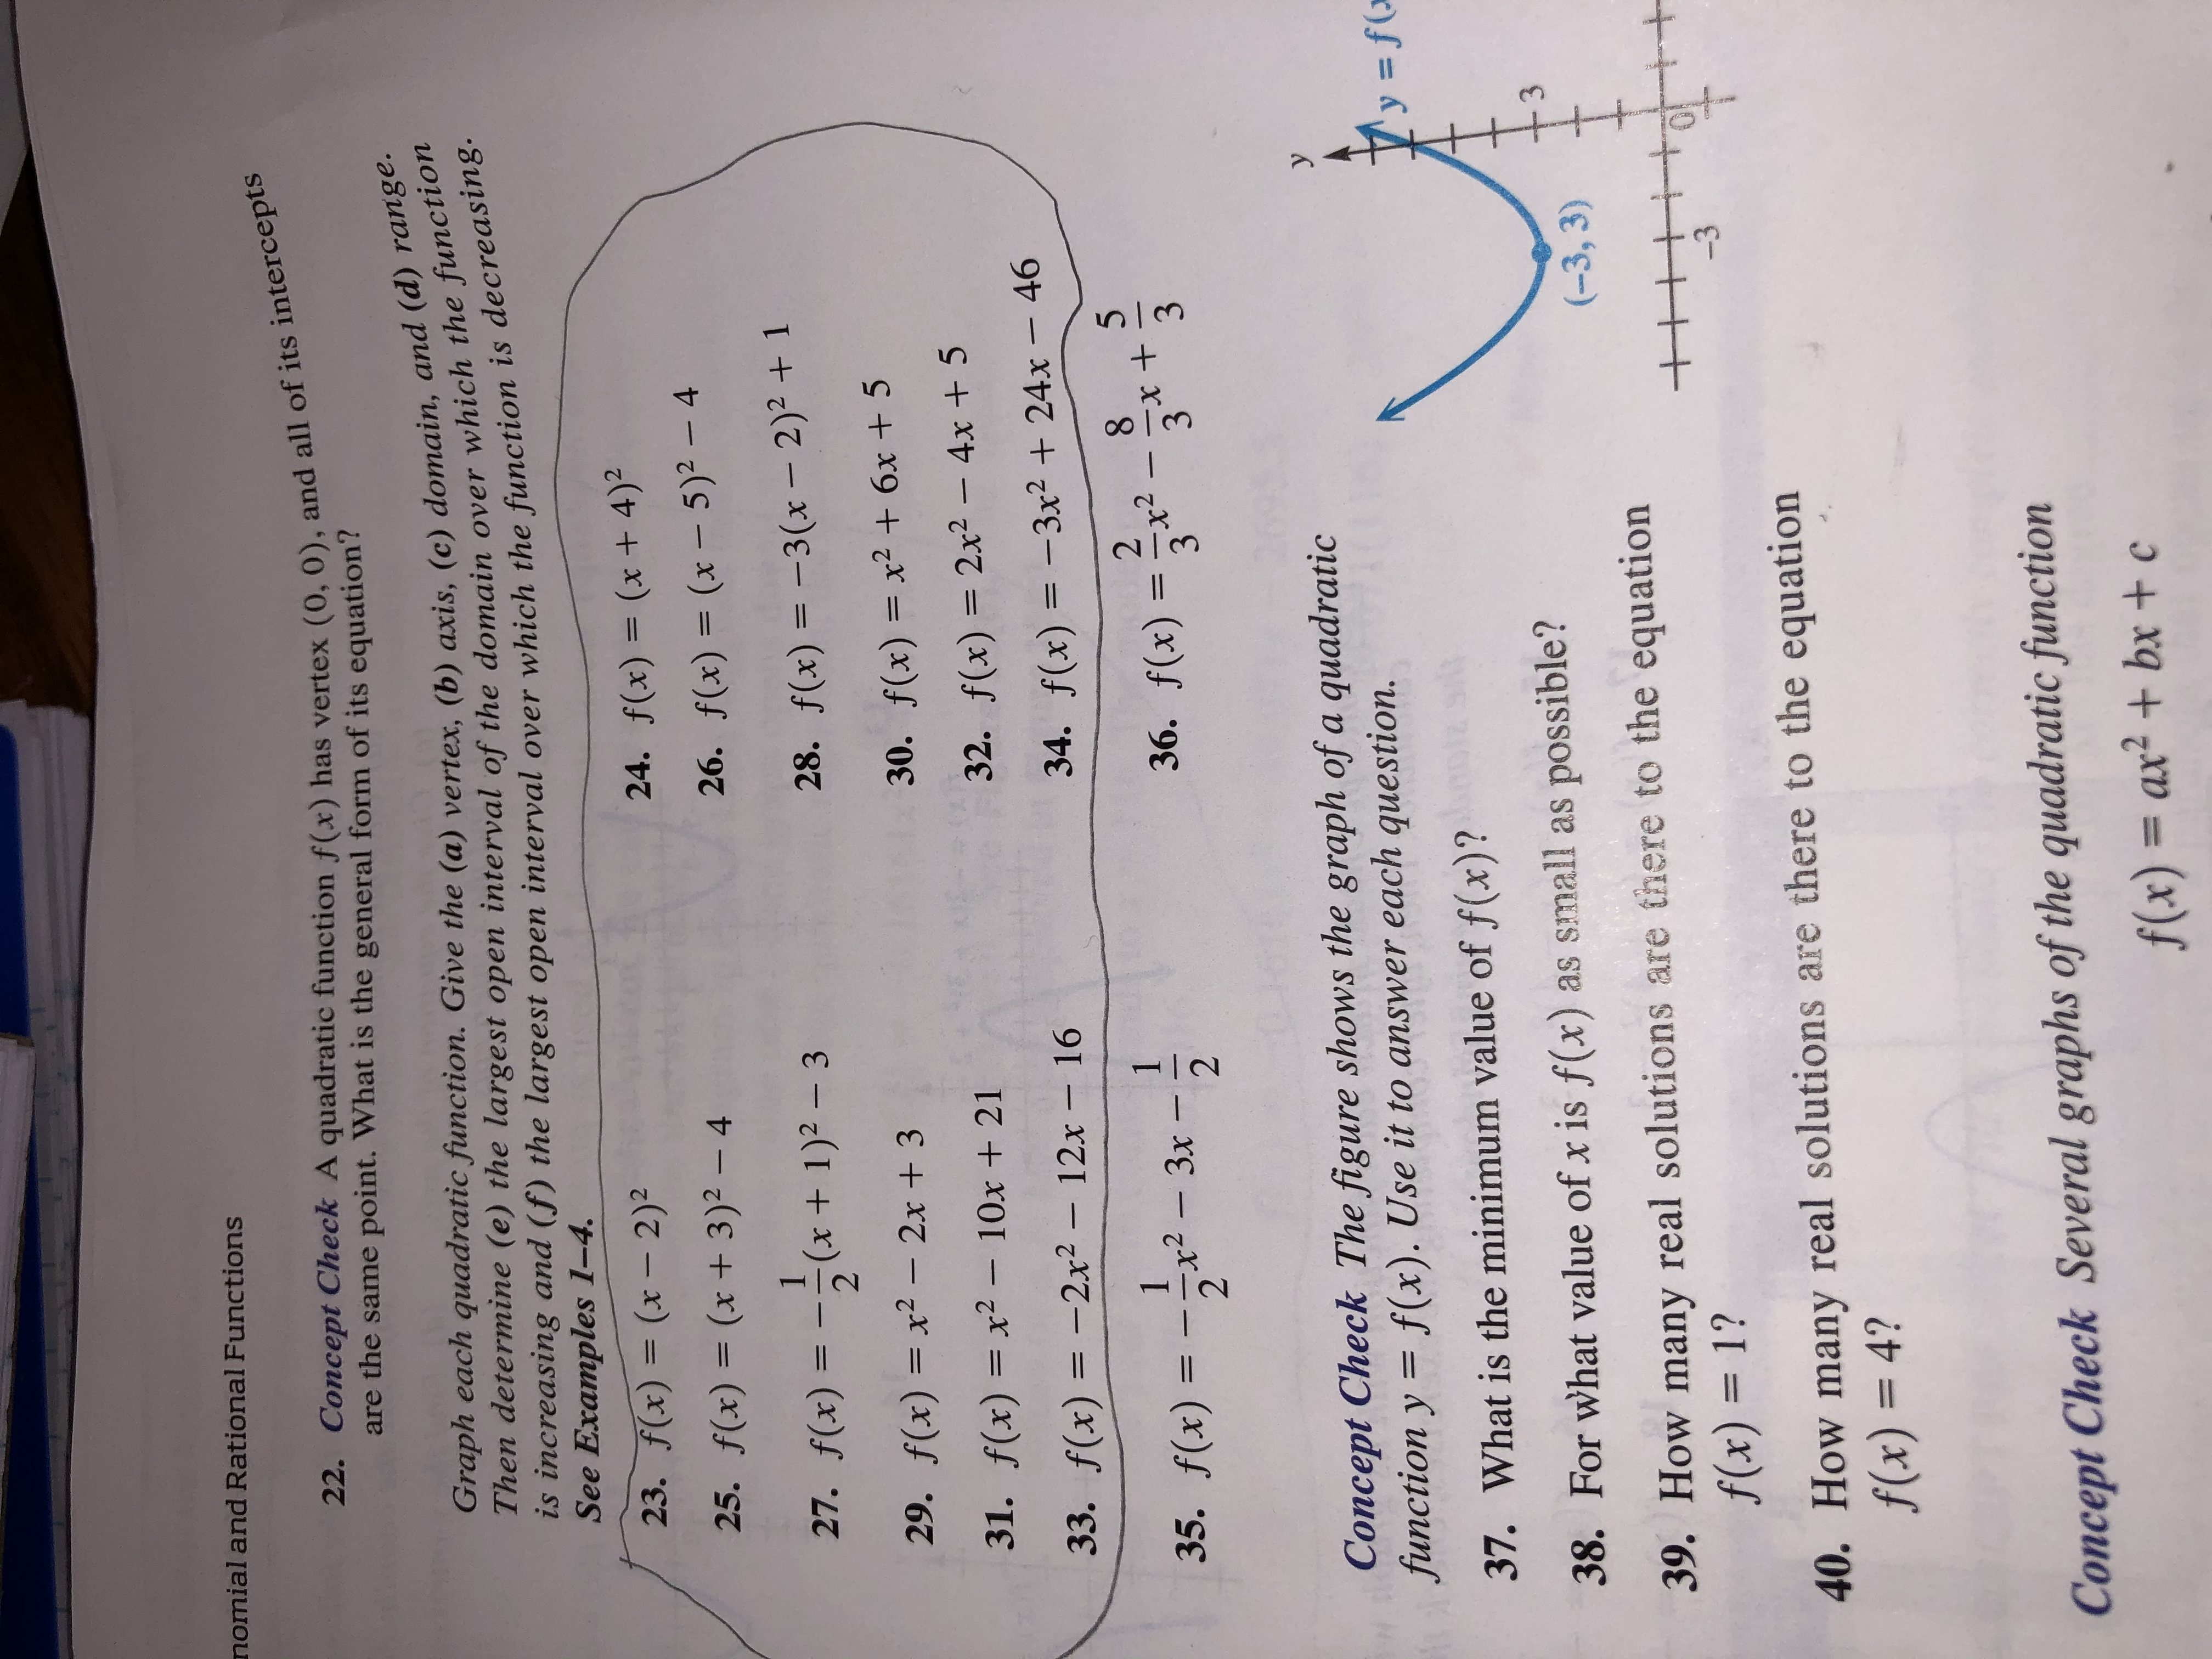 nomial and Rational Functions 22. Concept Check A quadratic function f(x) has vertex (0, 0), and all of its intercepts are the same point. What is the general form of its equation? Graph each quadratic function. Give the (a) vertex, (b) axis, (c) domain, and (d) range. Then determine (e) the largest open interval of the domain over which the function is increasing and (f) the largest open interval over which the function is decreasing. See Examples 1-4 23. f(x) = (x - 2)2 24. f(x) (x + 4)2 25. f(x) = (x + 3)2 - 4 26. f(x) (x - 5)2 - 4 11 27. f(x) (x + 1)2 - 3 28. f(x)3(x - 2)2 +1 29. f(x) = x2- 2x + 3 30. f(x) = x2 +6x + 5 31. f(x)= x2 - 10x + 21 32. f(x) 2x2- 4x + 5 1 33. f(x)=-2x2- 12x- 16 34. f(x)=-3x224x 46 5 35. f(x)= 2- 2 x2-3x- 36. f(x) x2 3 3 3 Concept Check The figure shows the graph of a quadratic function y f (x). Use it to answer each question. y 1 'y = f( 37. What is the minimum value of f(x)? 38. For what value of x is f(x) as small as possible? 3 (-3, 3) 39. How many real solutions are there to the equation f(x) = 1? + -3 40. How many real solutions are there to the equation f(x) = 4? Concept Check Several graphs of the quadratic function f(x) = ax2 + bx + c ++ - |C